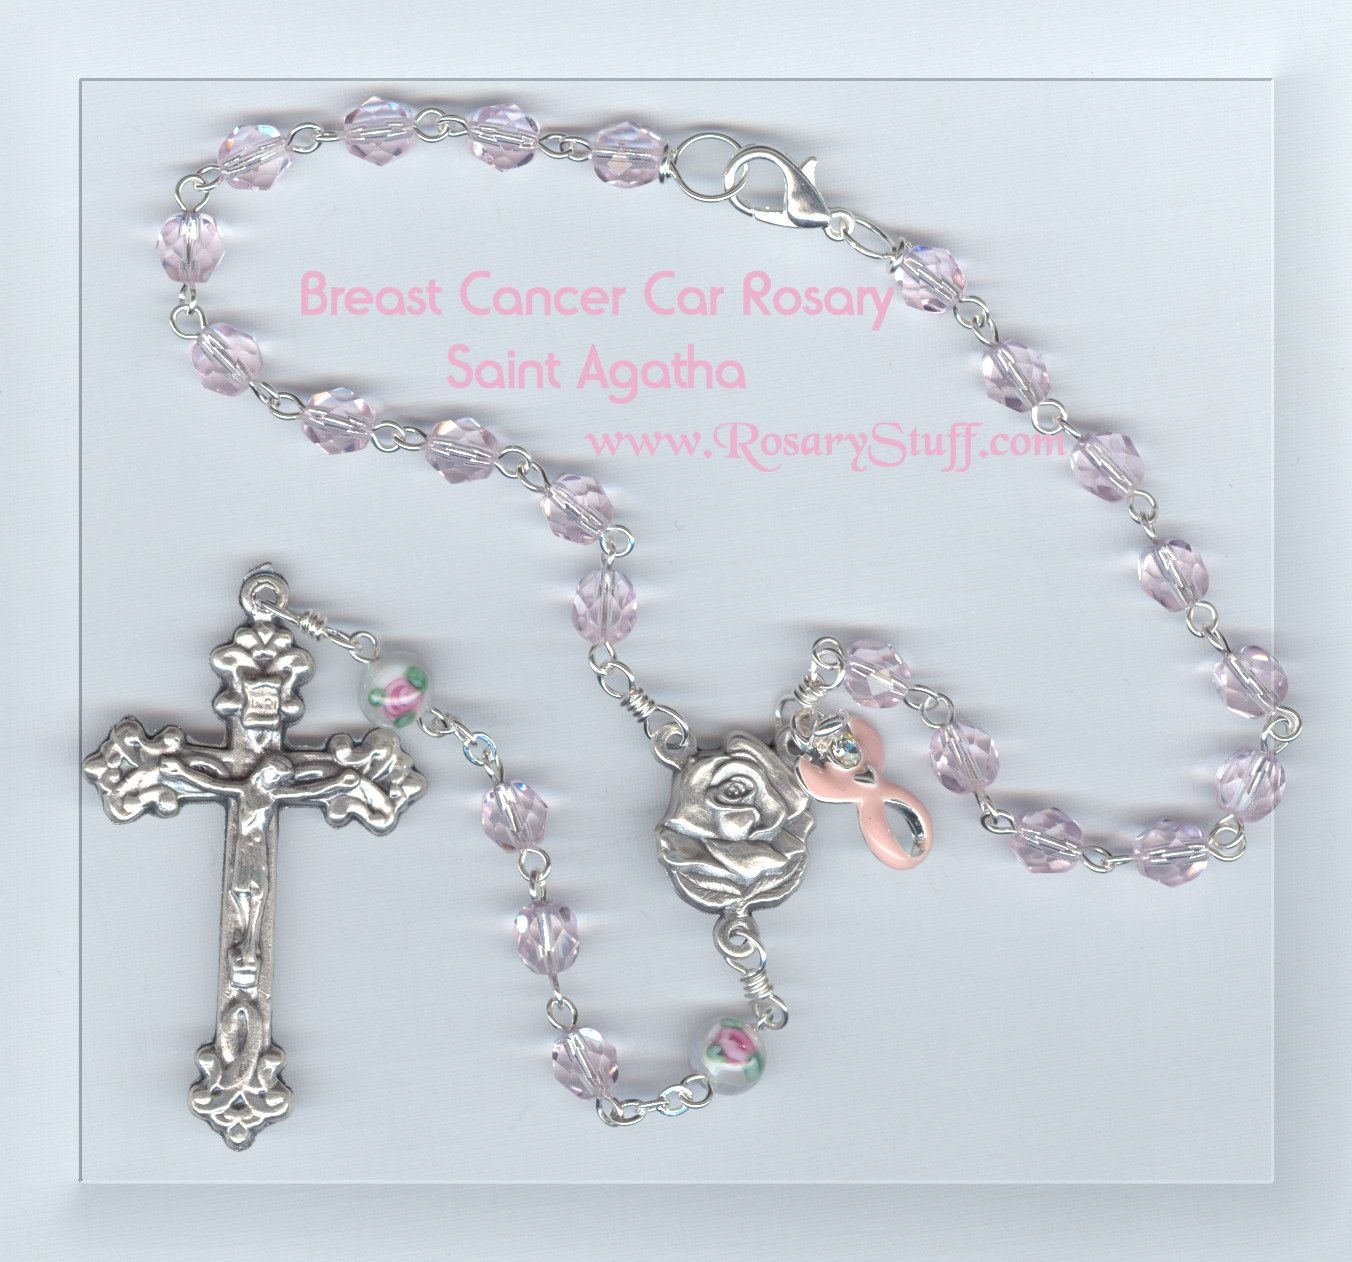 Cancer Car Rosary for Charity ~ St. Agatha | Crucifix and ...